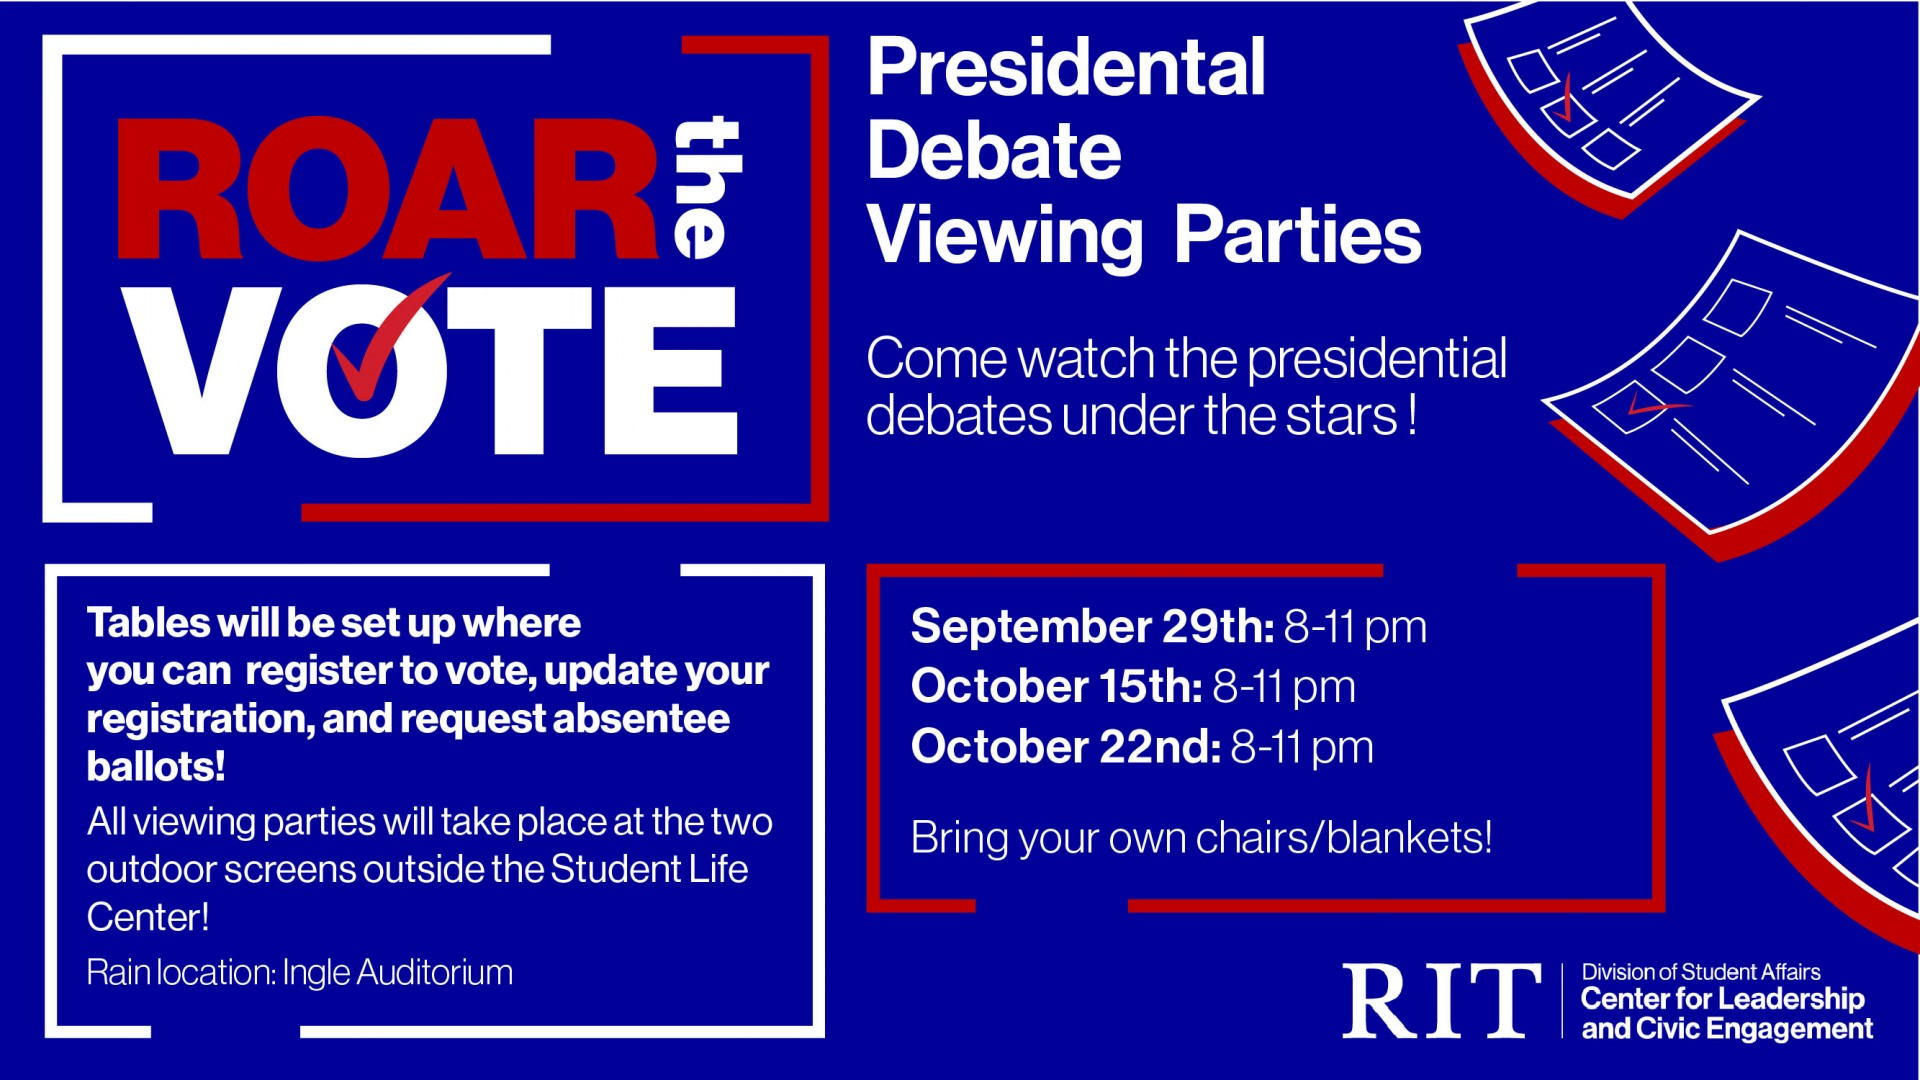 Come watch the presidential debate under the stars! Join ROAR the Vote as we screen the presidential debate on our two outdoor screens. You can also register to vote and request an absentee ballot!  The debate is scheduled to start at 9pm. Please bring your own blanket/chairs to sit on!  Masks are required if 6 ft. distancing isn't possible. We have requested ASL interpreters and will screen the debate with captions (if available).